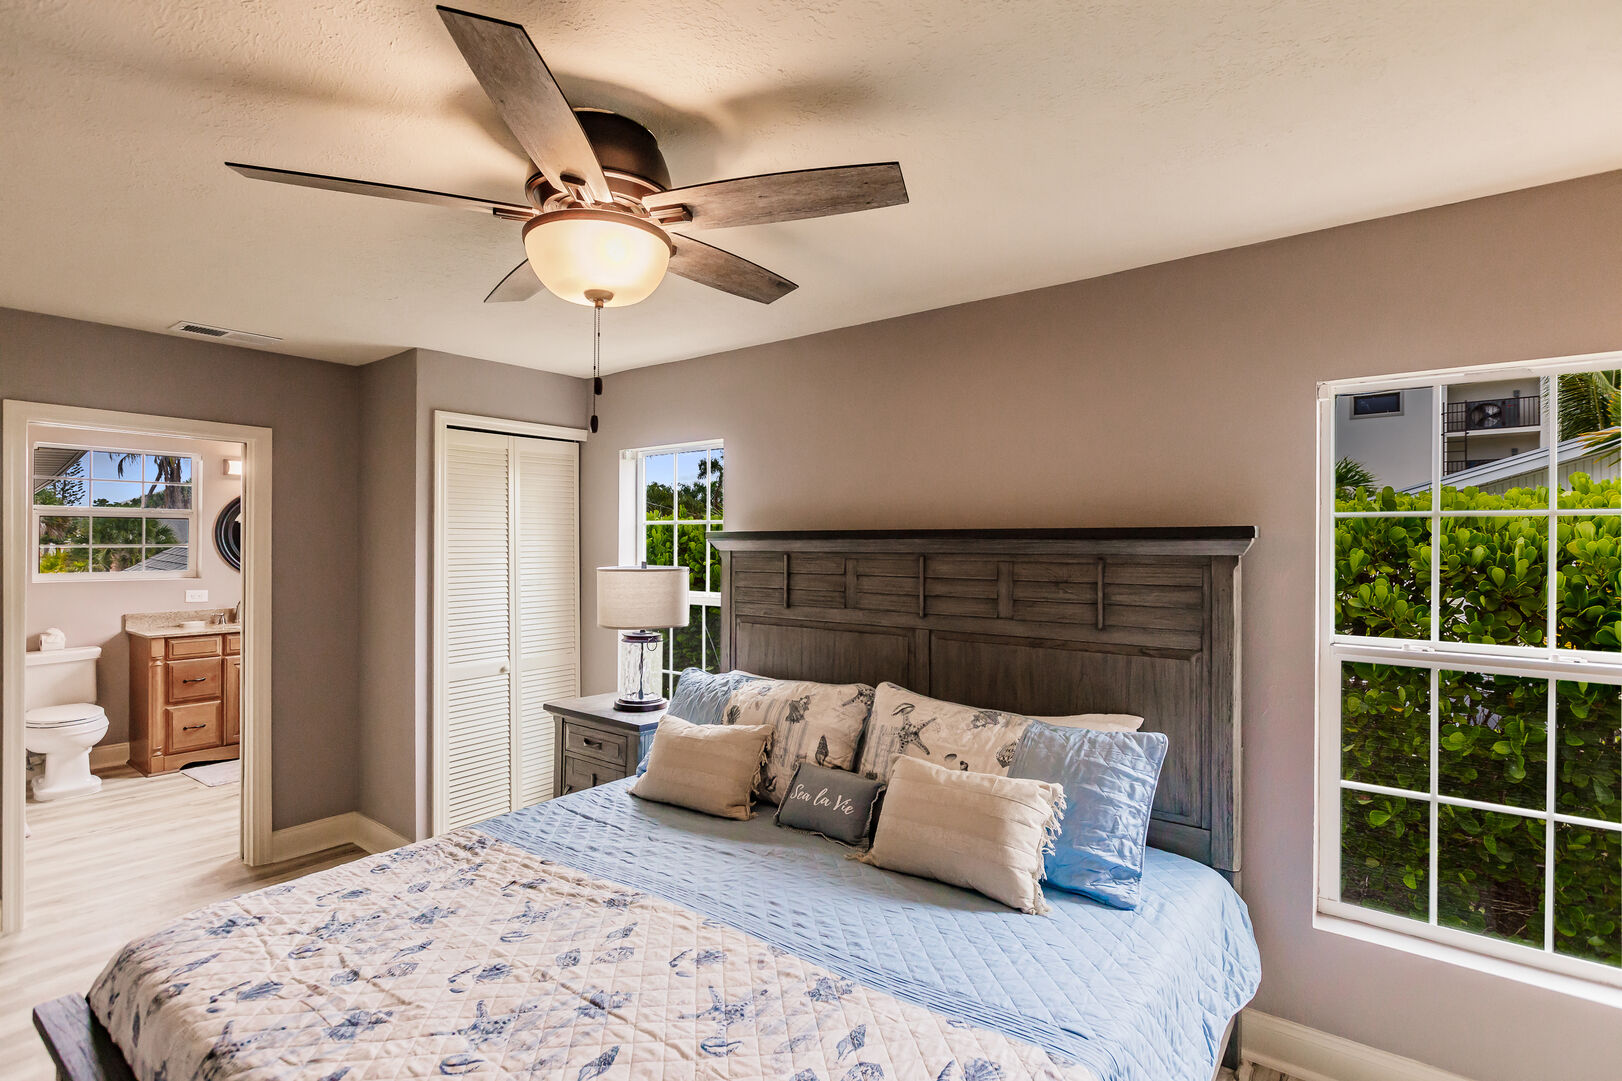 Bedroom with Private Bathroom Private Beach House Rental in Florida